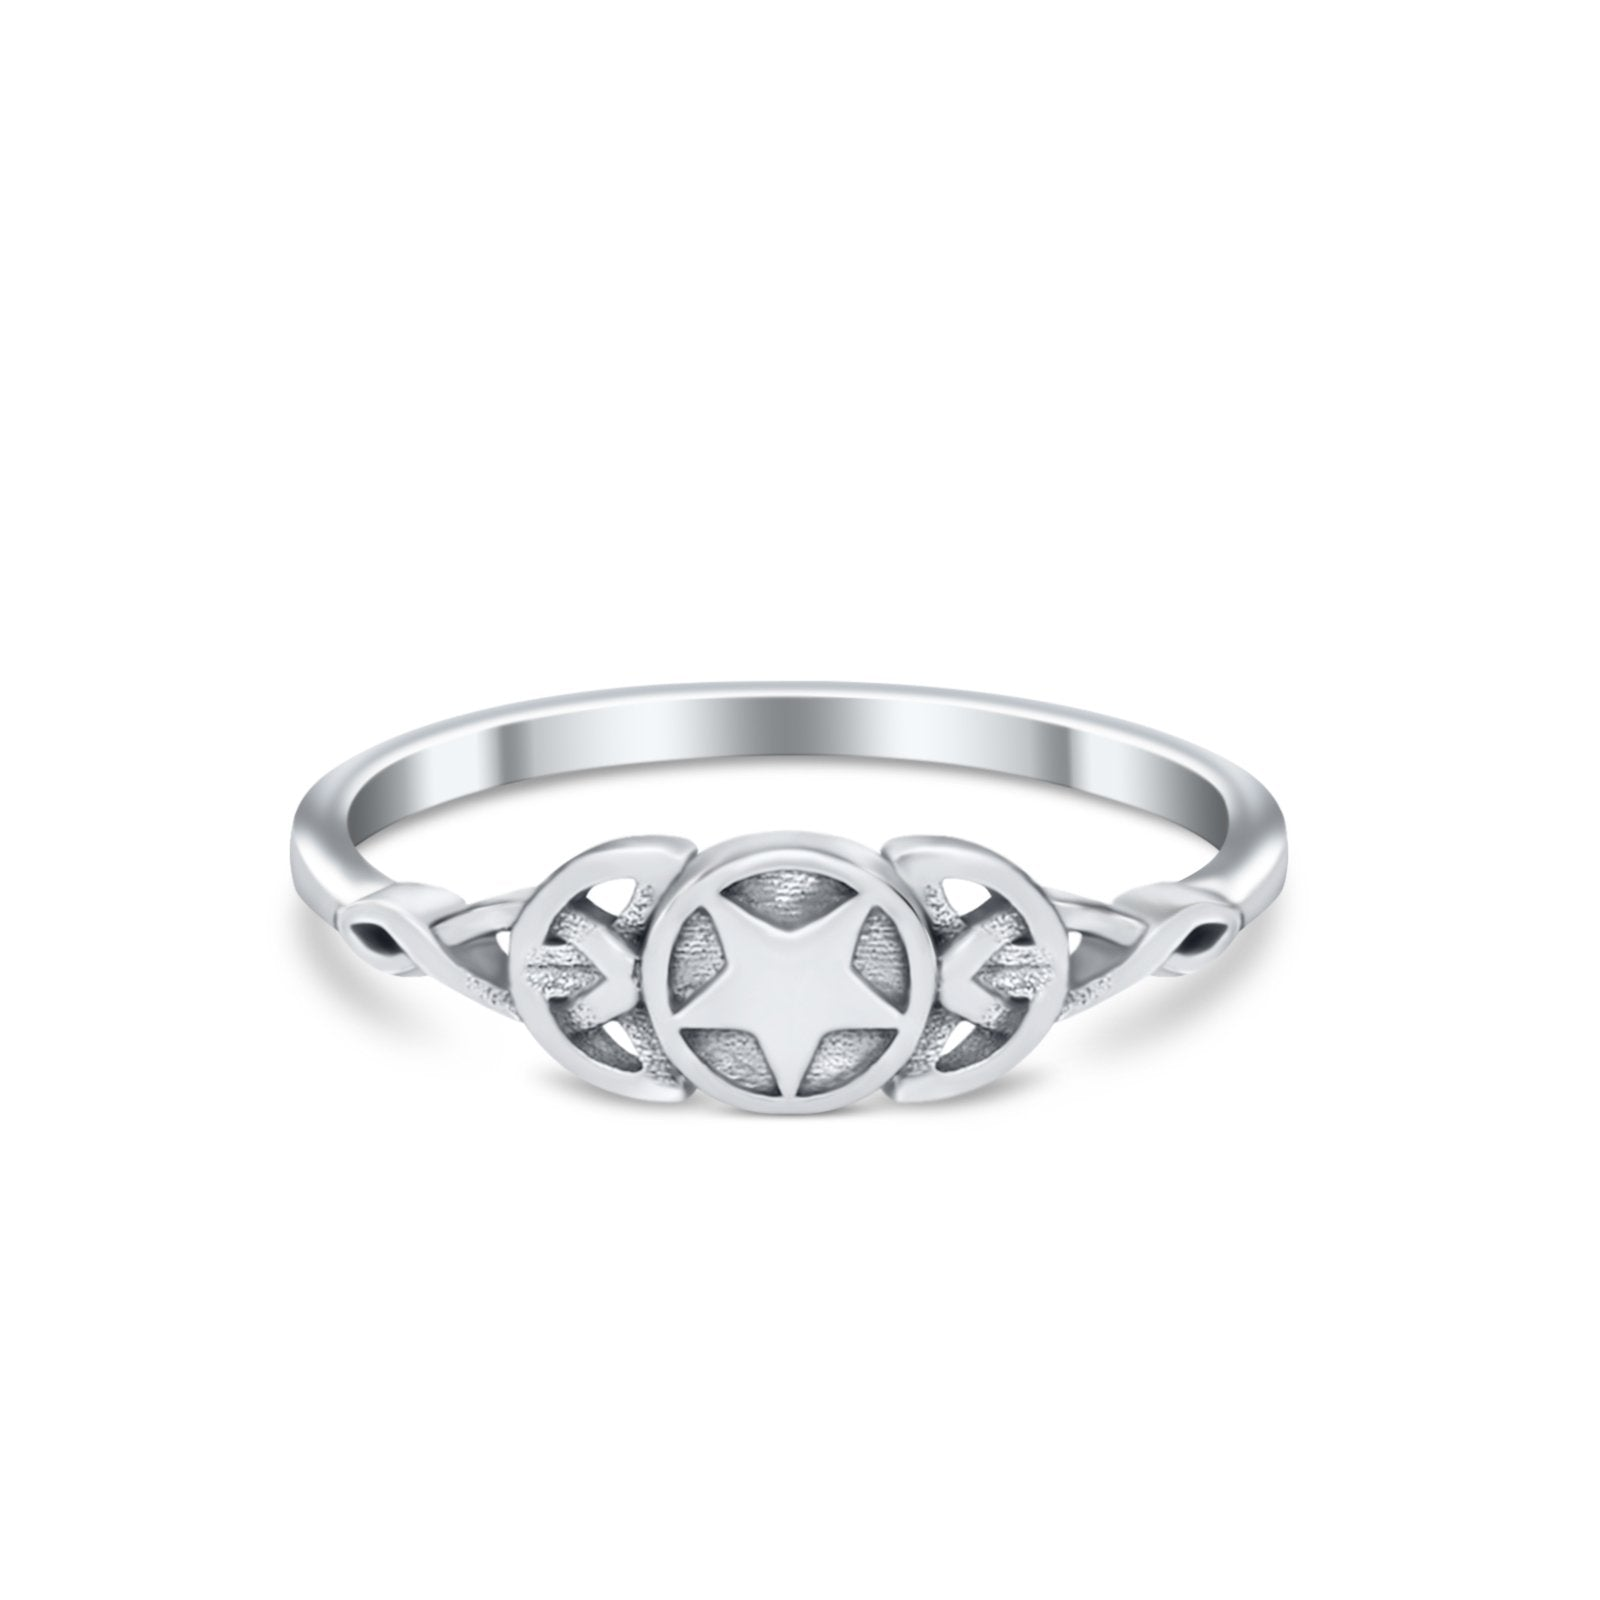 Petite Dainty Infinity Pentagram Star Thumb Ring Band Solid 925 Sterling silver